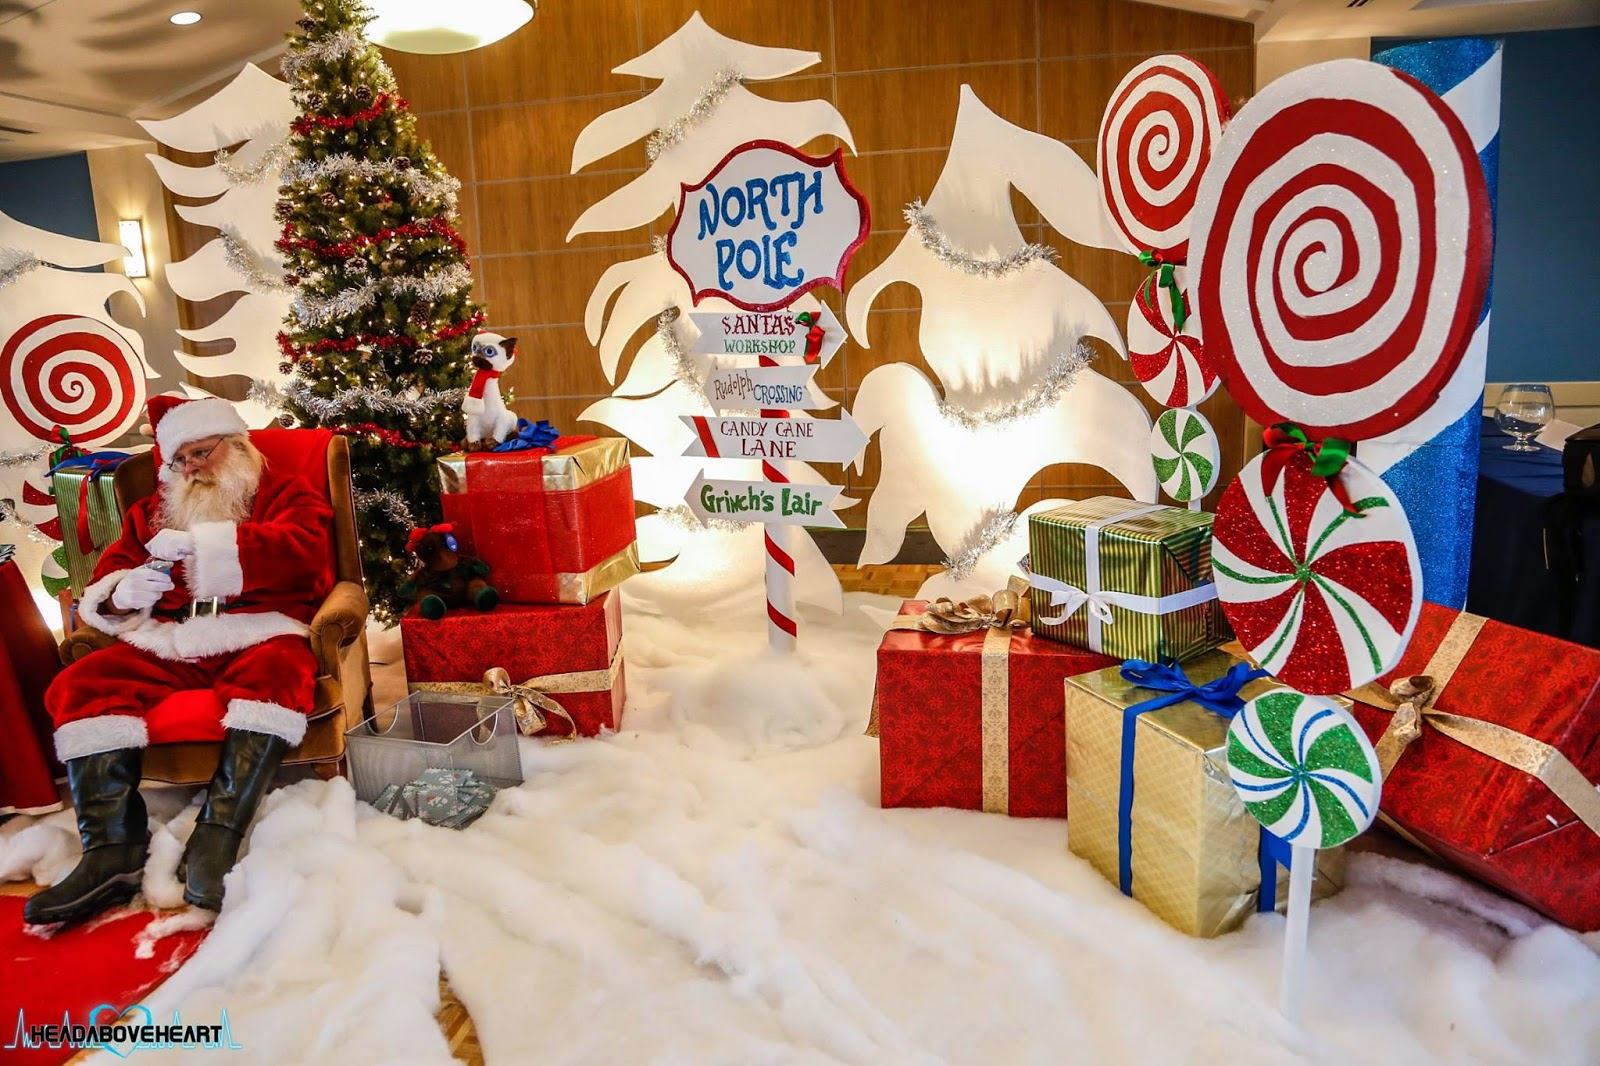 Cubicle Decorating Kits >> Don't forget to stop and eat the roses: Pics with Santa - A Set Design